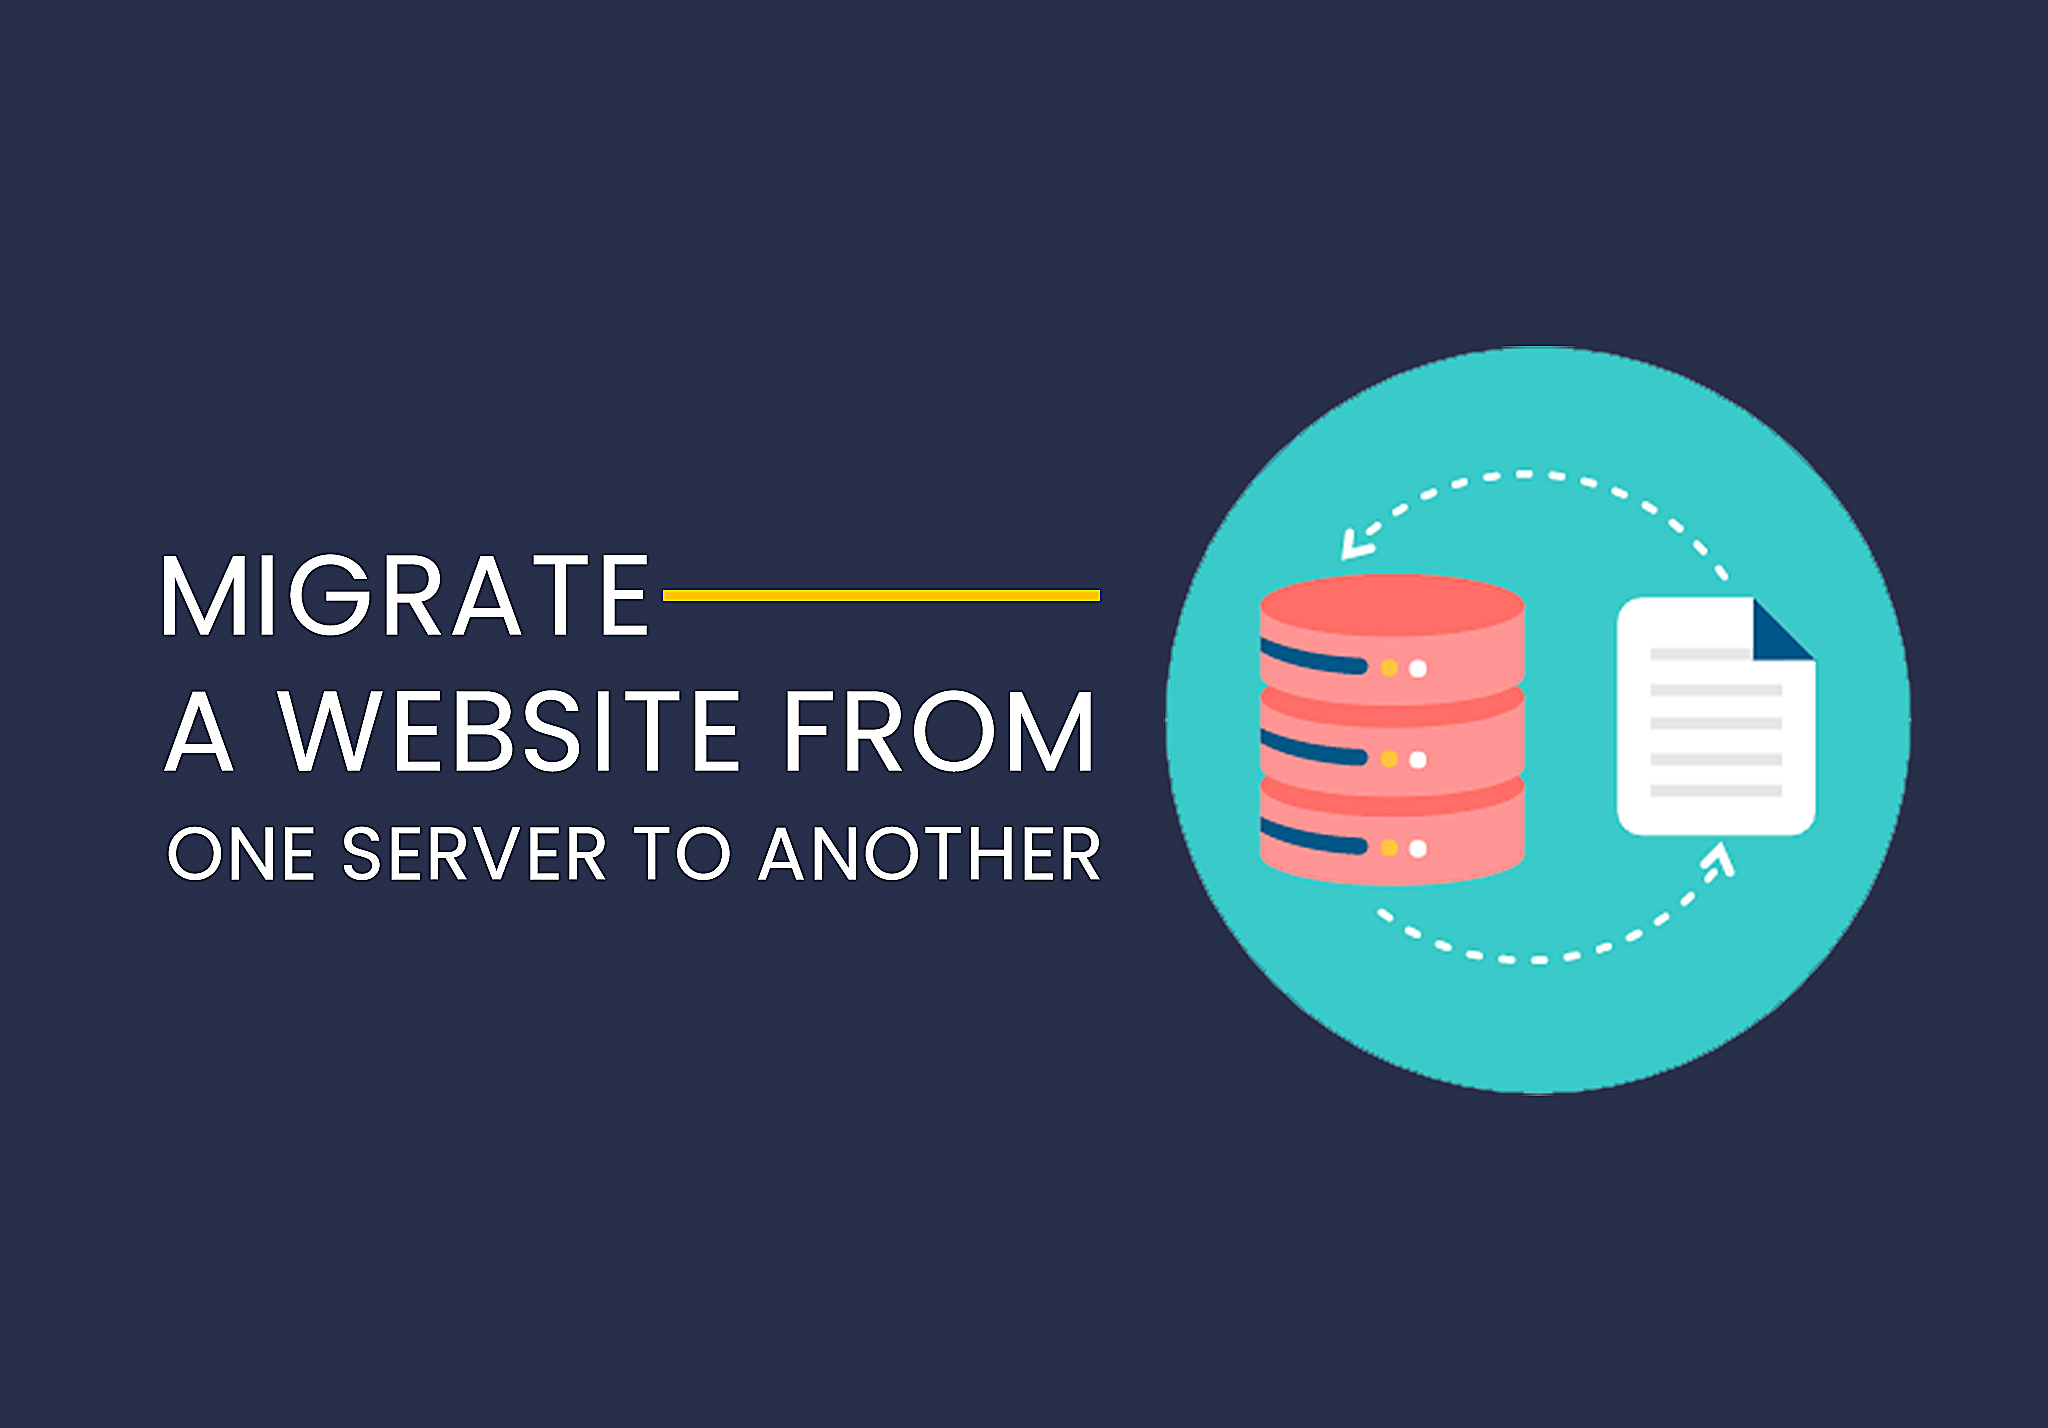 Migrate a website from one server to another